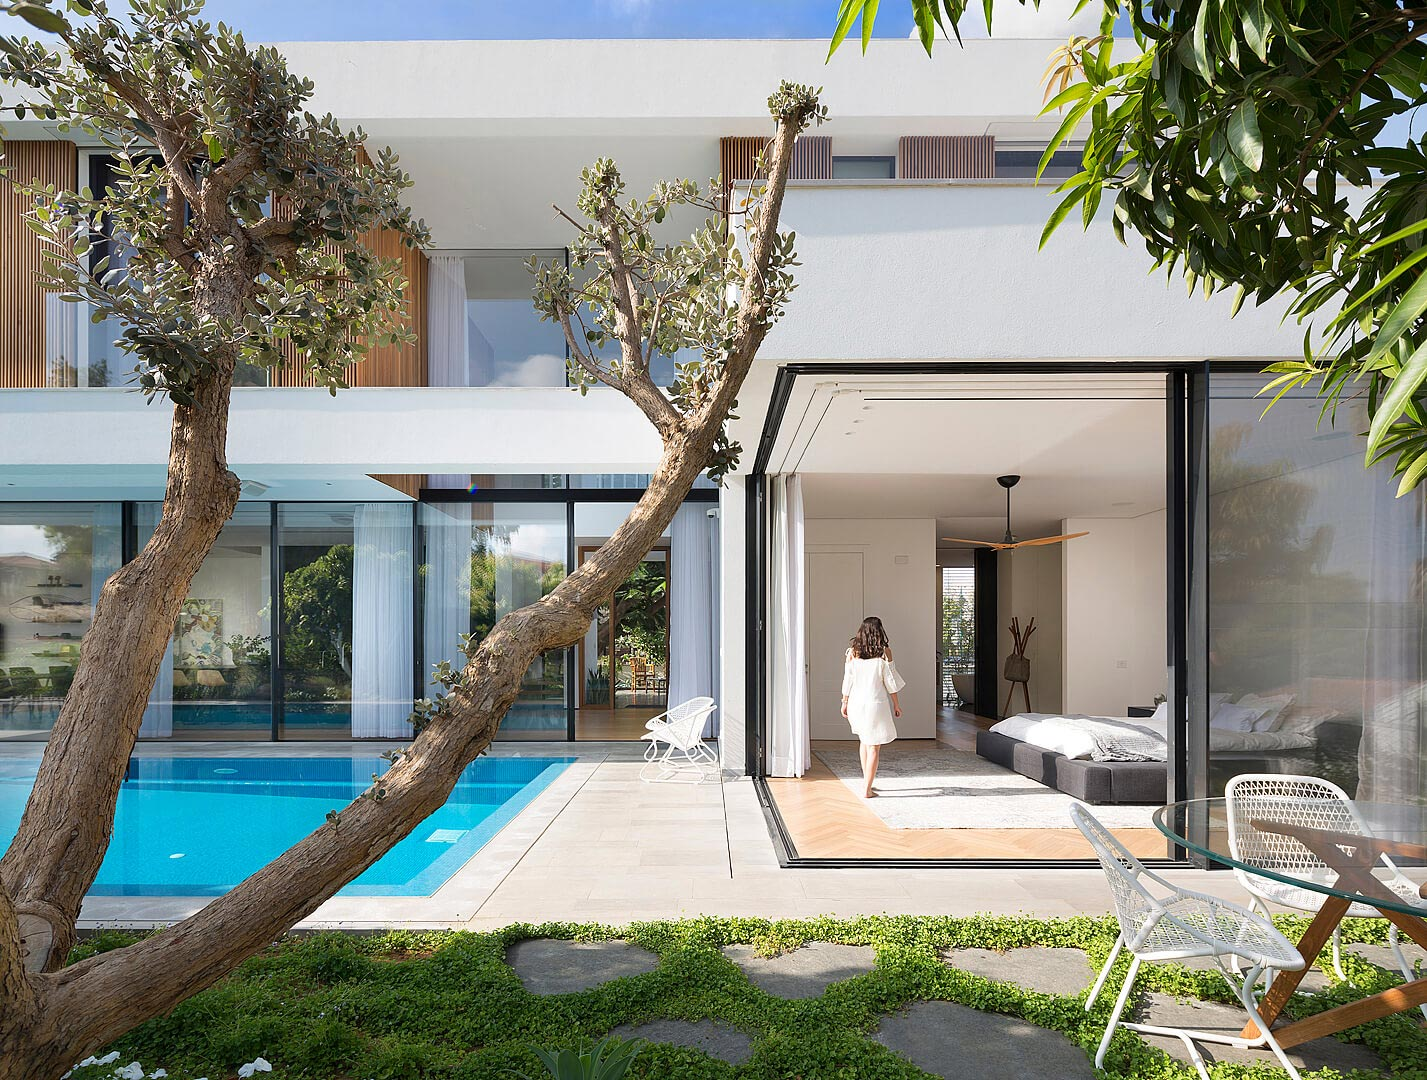 L Shaped House Designed To Have The Park With Eucalyptus Trees Seen As A Continuation Of Its Own Garden Caandesign Architecture And Home Design Blog